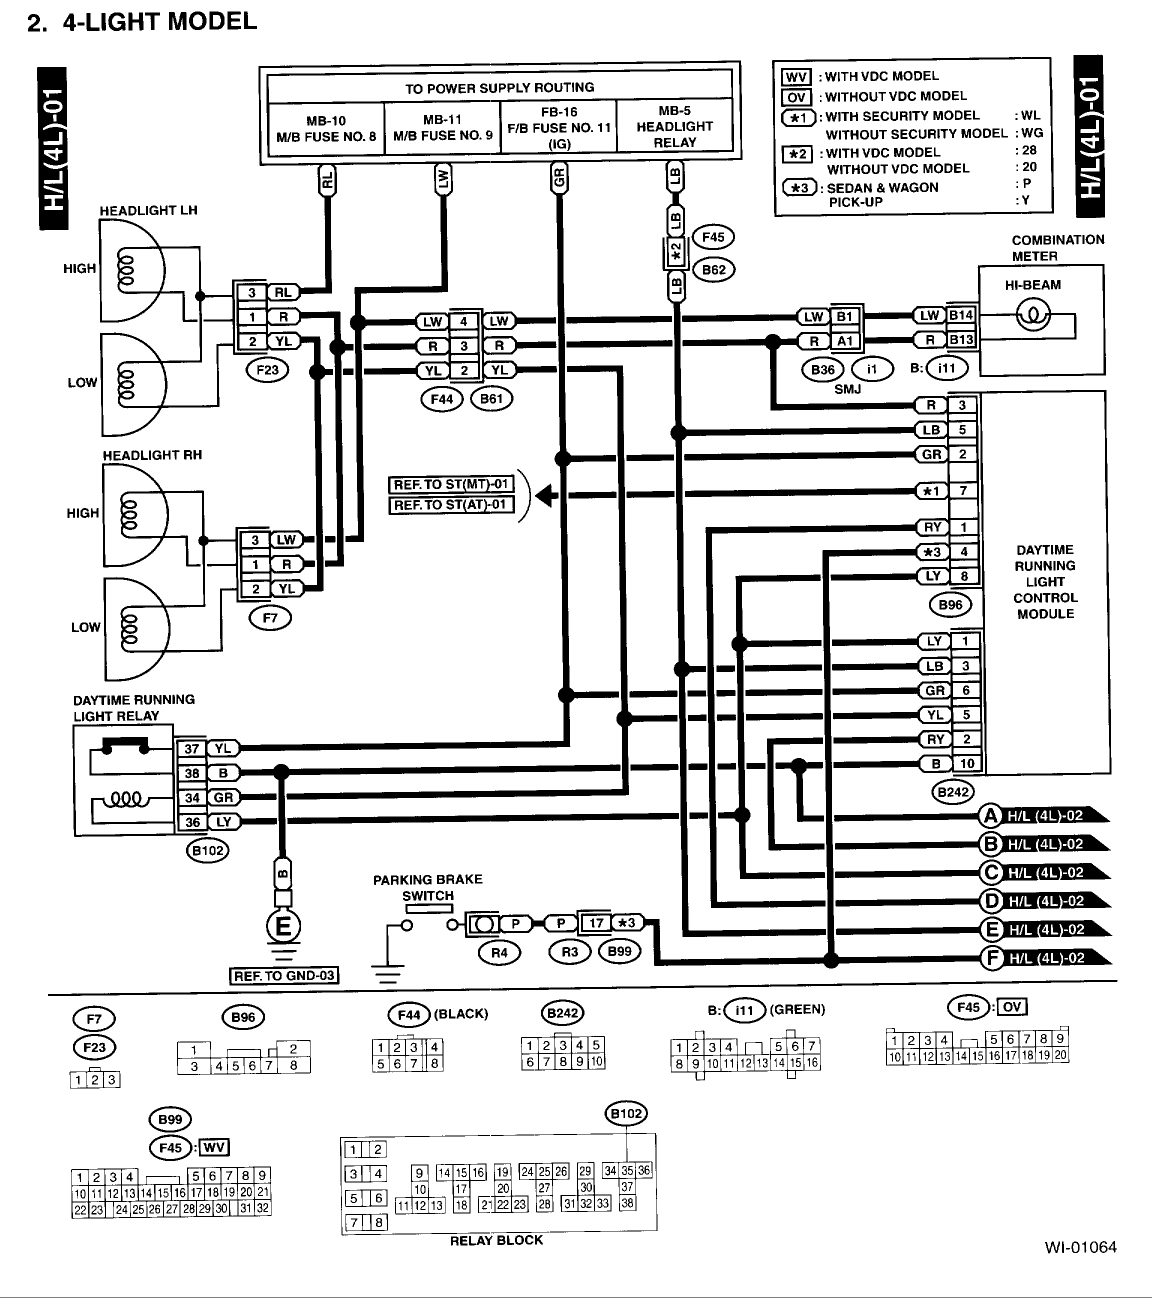 DIAGRAM] 2010 Subaru Forester Radio Wiring Diagram FULL Version HD Quality Wiring  Diagram - DIAGRAMAEXPRESS.CONSERVATOIRE-CHANTERIE.FRdiagramaexpress.conservatoire-chanterie.fr